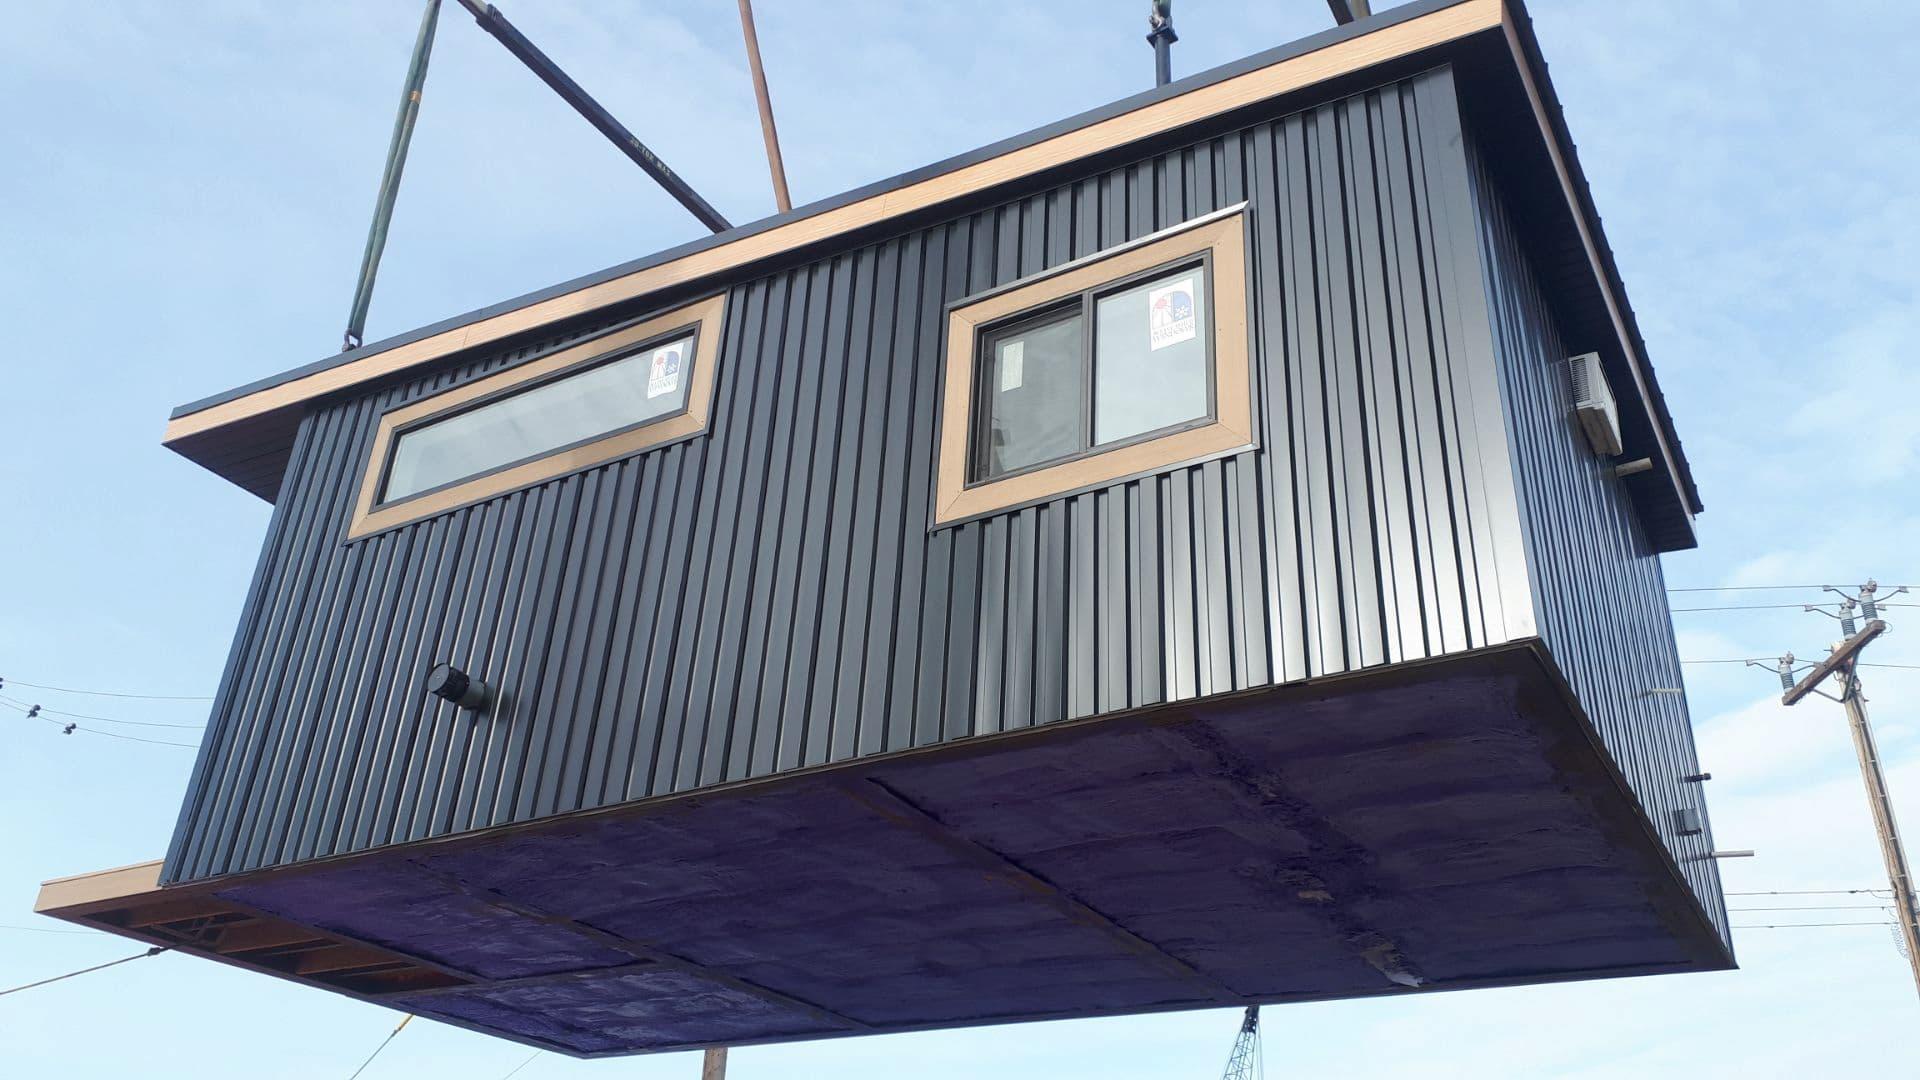 Modular shipping container home with black and wooden accents